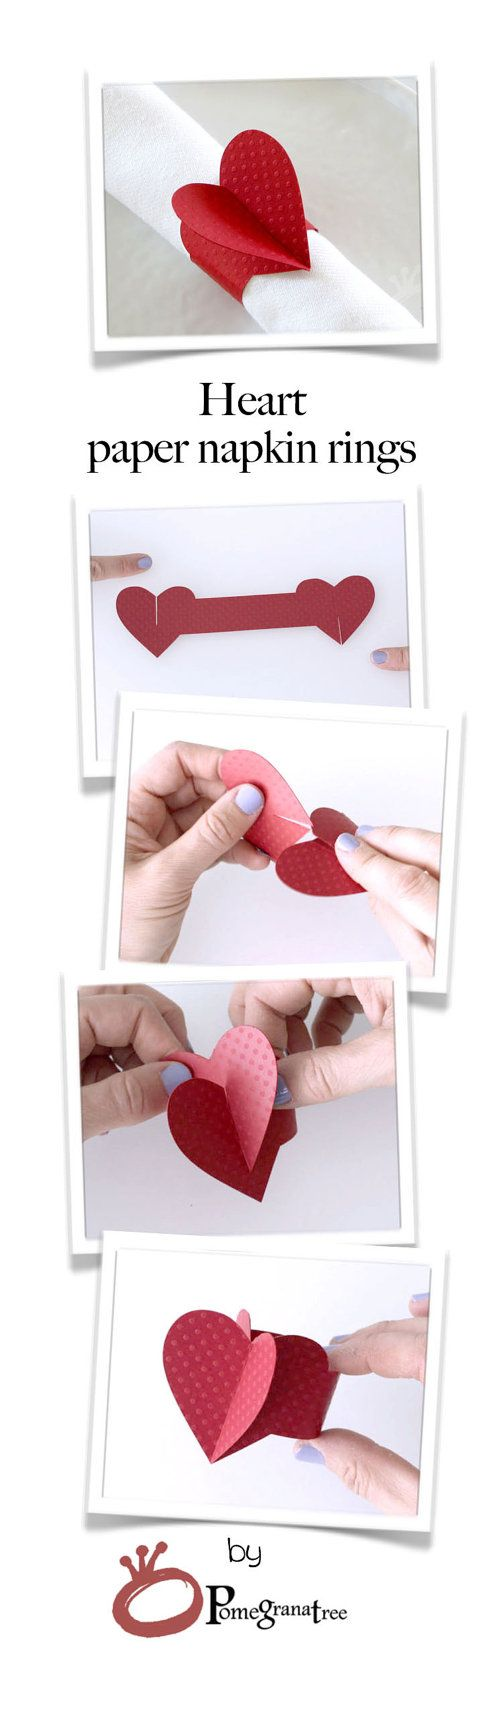 Valentines Day Decor, Red Heart Paper Napkin Rings, Party Decorations, Wedding Decor, Romantic Table Decor, Red Napkin Rings Set of 4 HTD01 These napkin rings are a beautiful added touch for your special occasion and perfect for decorating any party table. These HEART shaped napkin rings are cut out of premium heavy paper, with delicate dots texture. Napkin rings are sold in sets of four. Napkin rings are shipped flat. Easy assembly - no glue or tape needed! Size: Flat: 7.5 / 19cm Assembl...